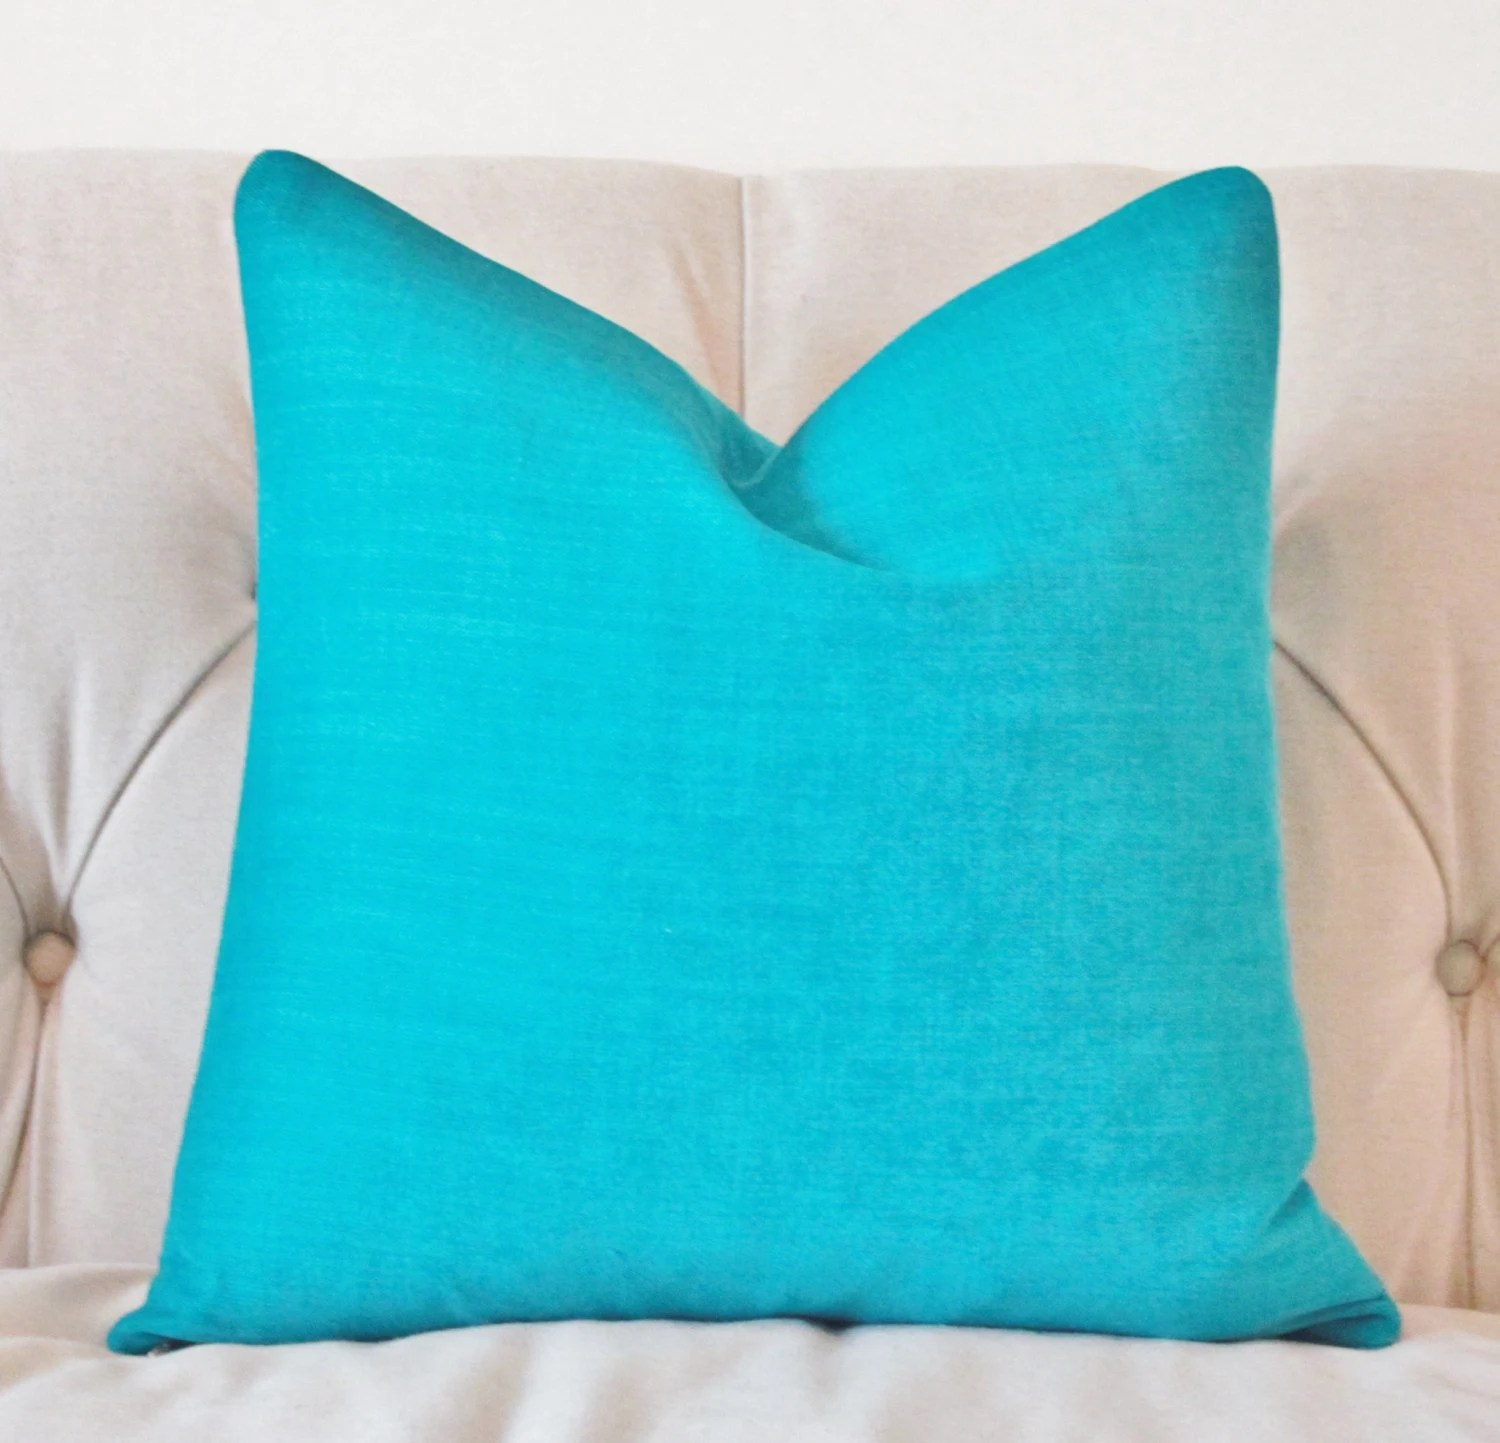 Best Decorative Teal Pillow Aqua Turquoise Pillow Cover This Month